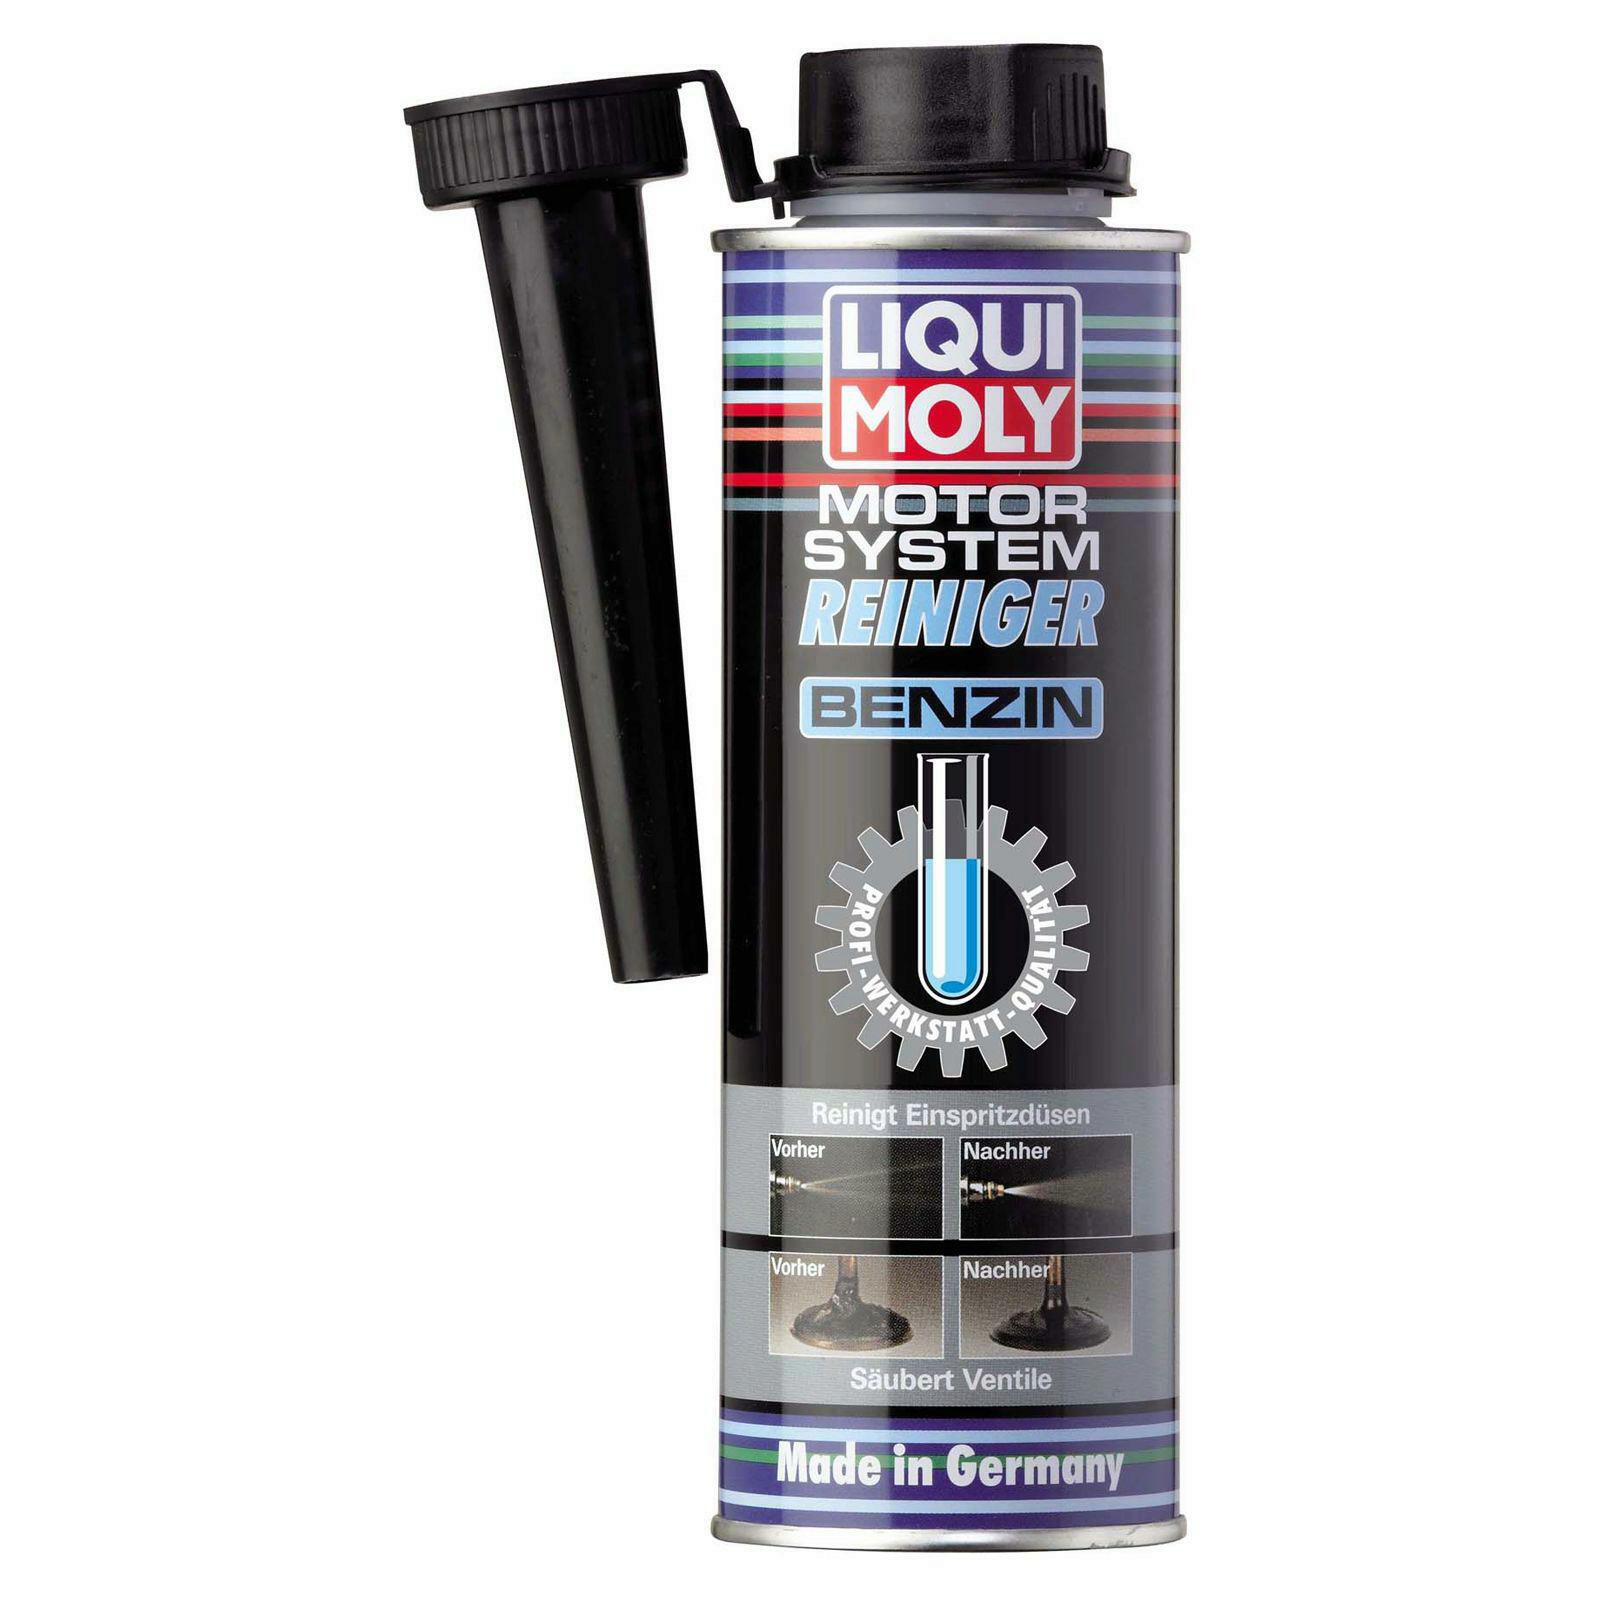 liqui moly motor system reiniger benzin 300ml lott autoteile. Black Bedroom Furniture Sets. Home Design Ideas